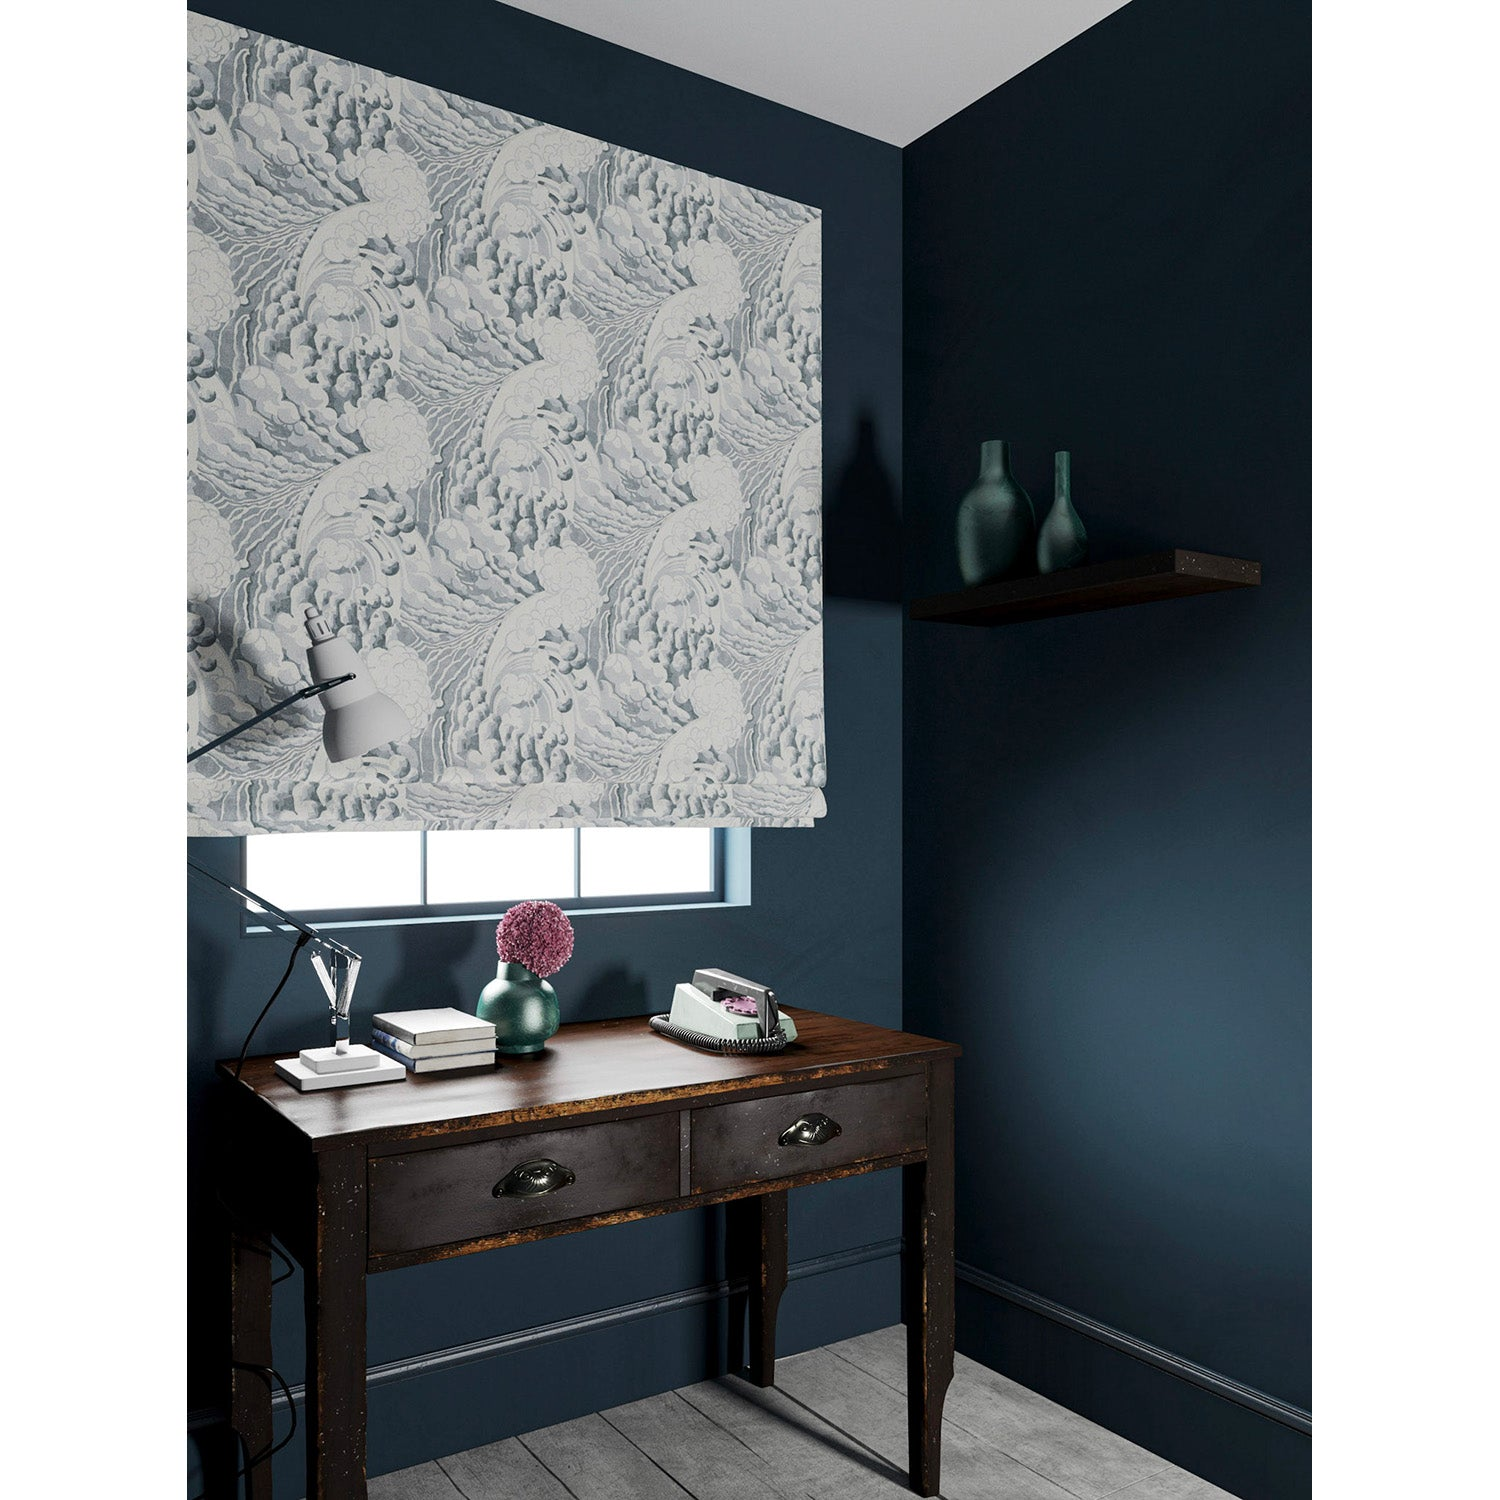 Blind in a velvet fabric with stain resistant finish with a grey and white wave design